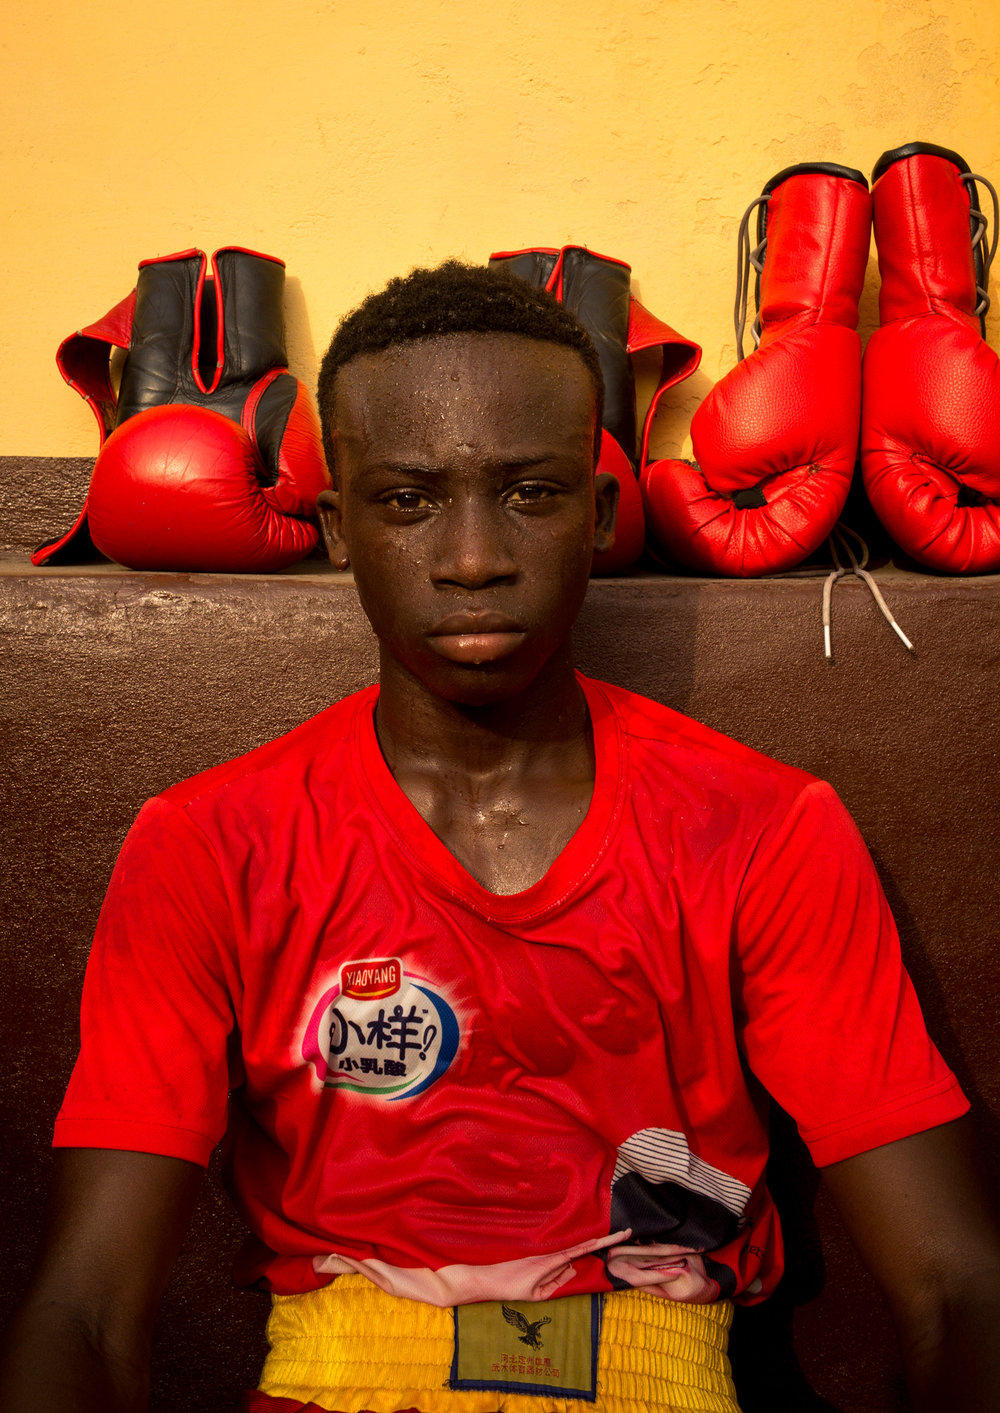 Samuel Takgi, 17, will be part of the few athletes to represent Ghana at the 2020 Olympics held in Tokyo - Discipline Boxing Academy, James Town